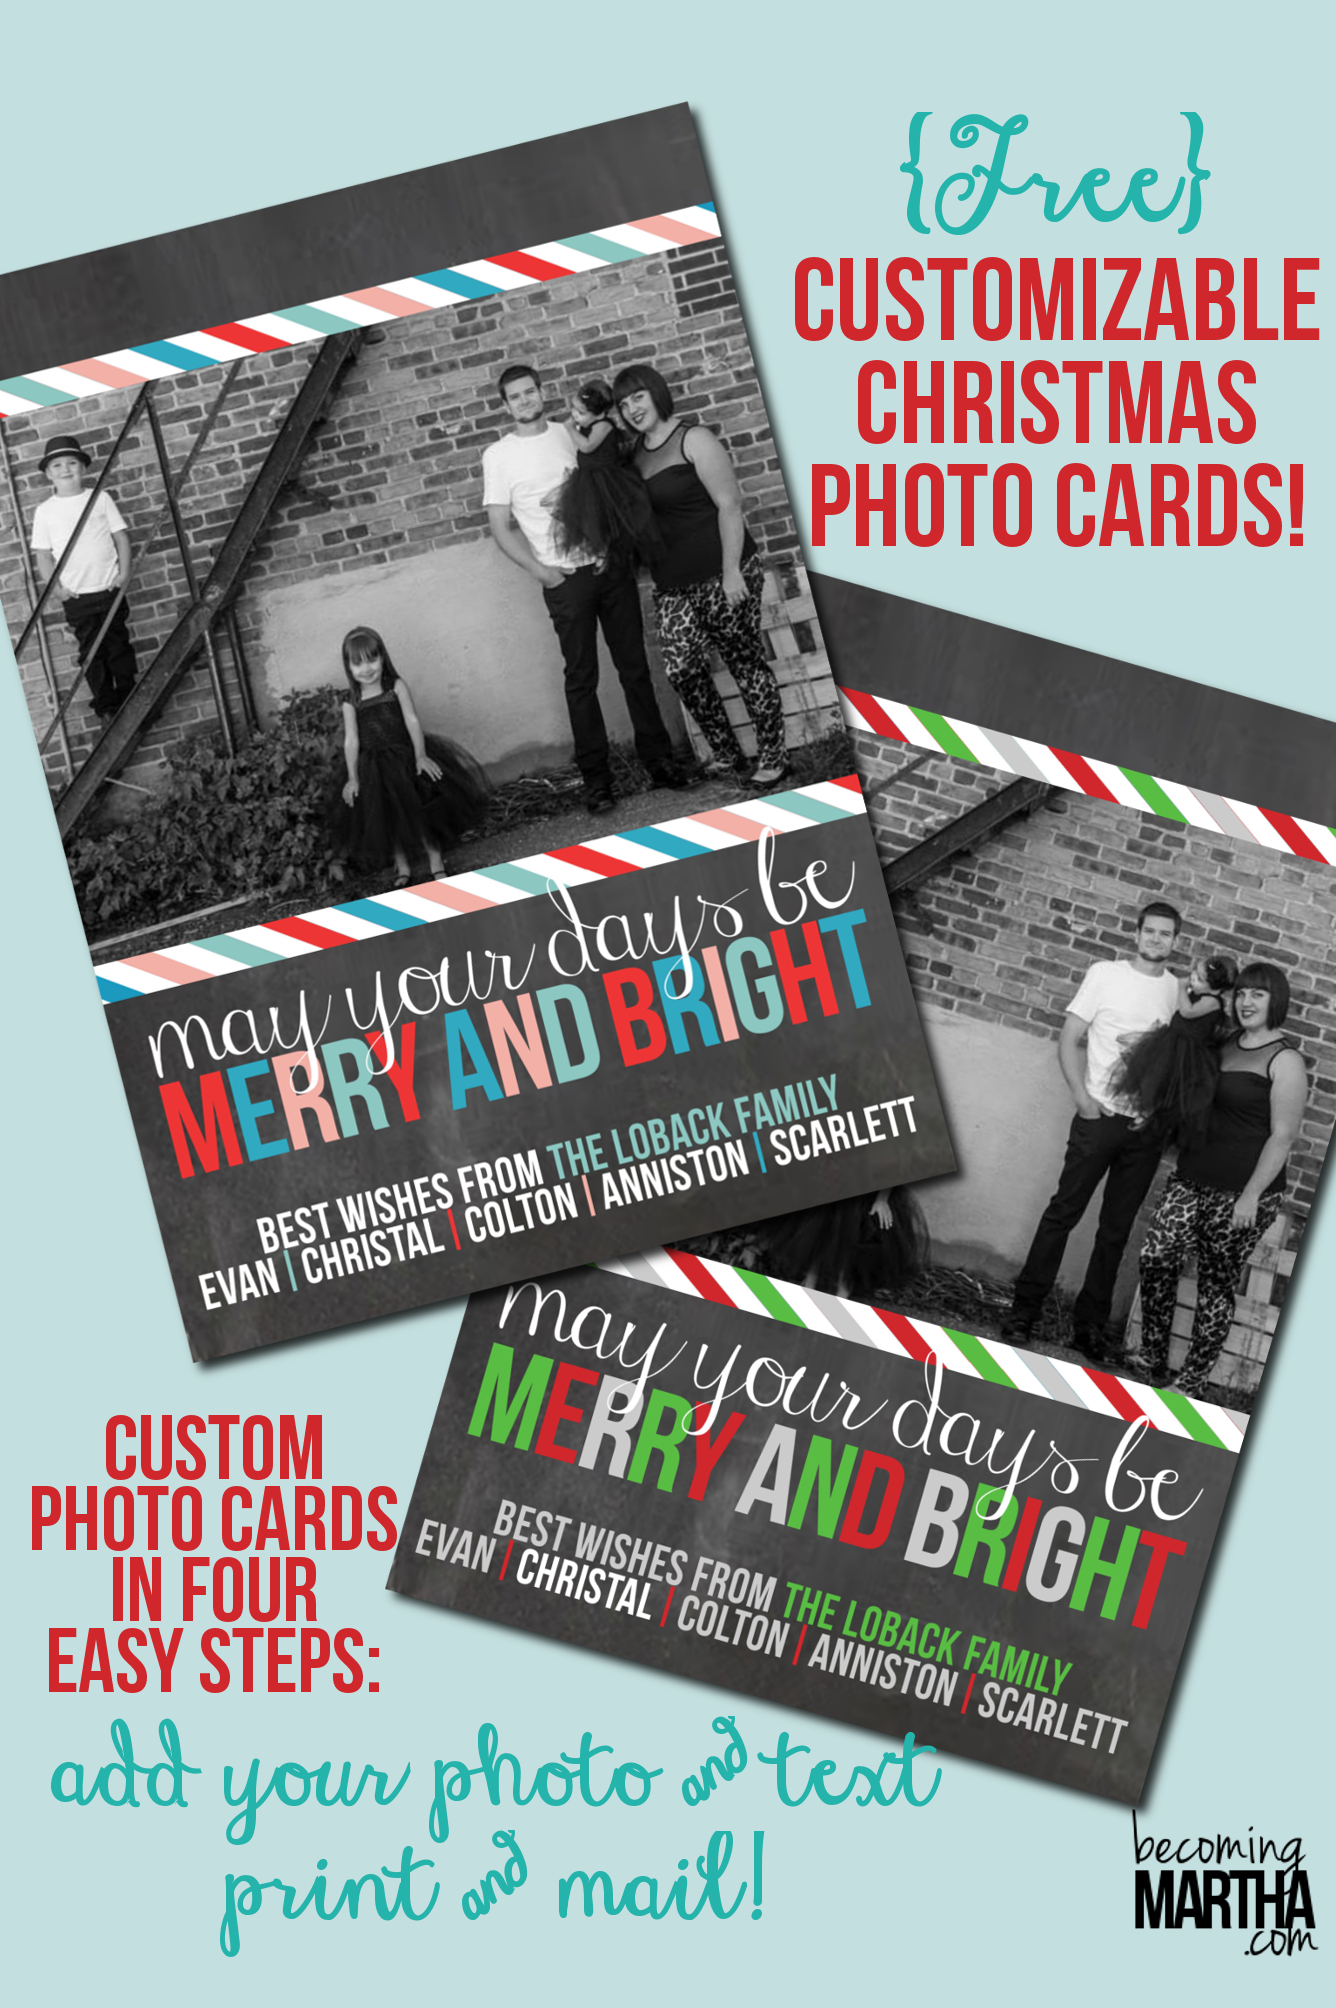 Free Printable Christmas Cards {Customize With Your Own Photo!} - Free Printable Photo Christmas Cards